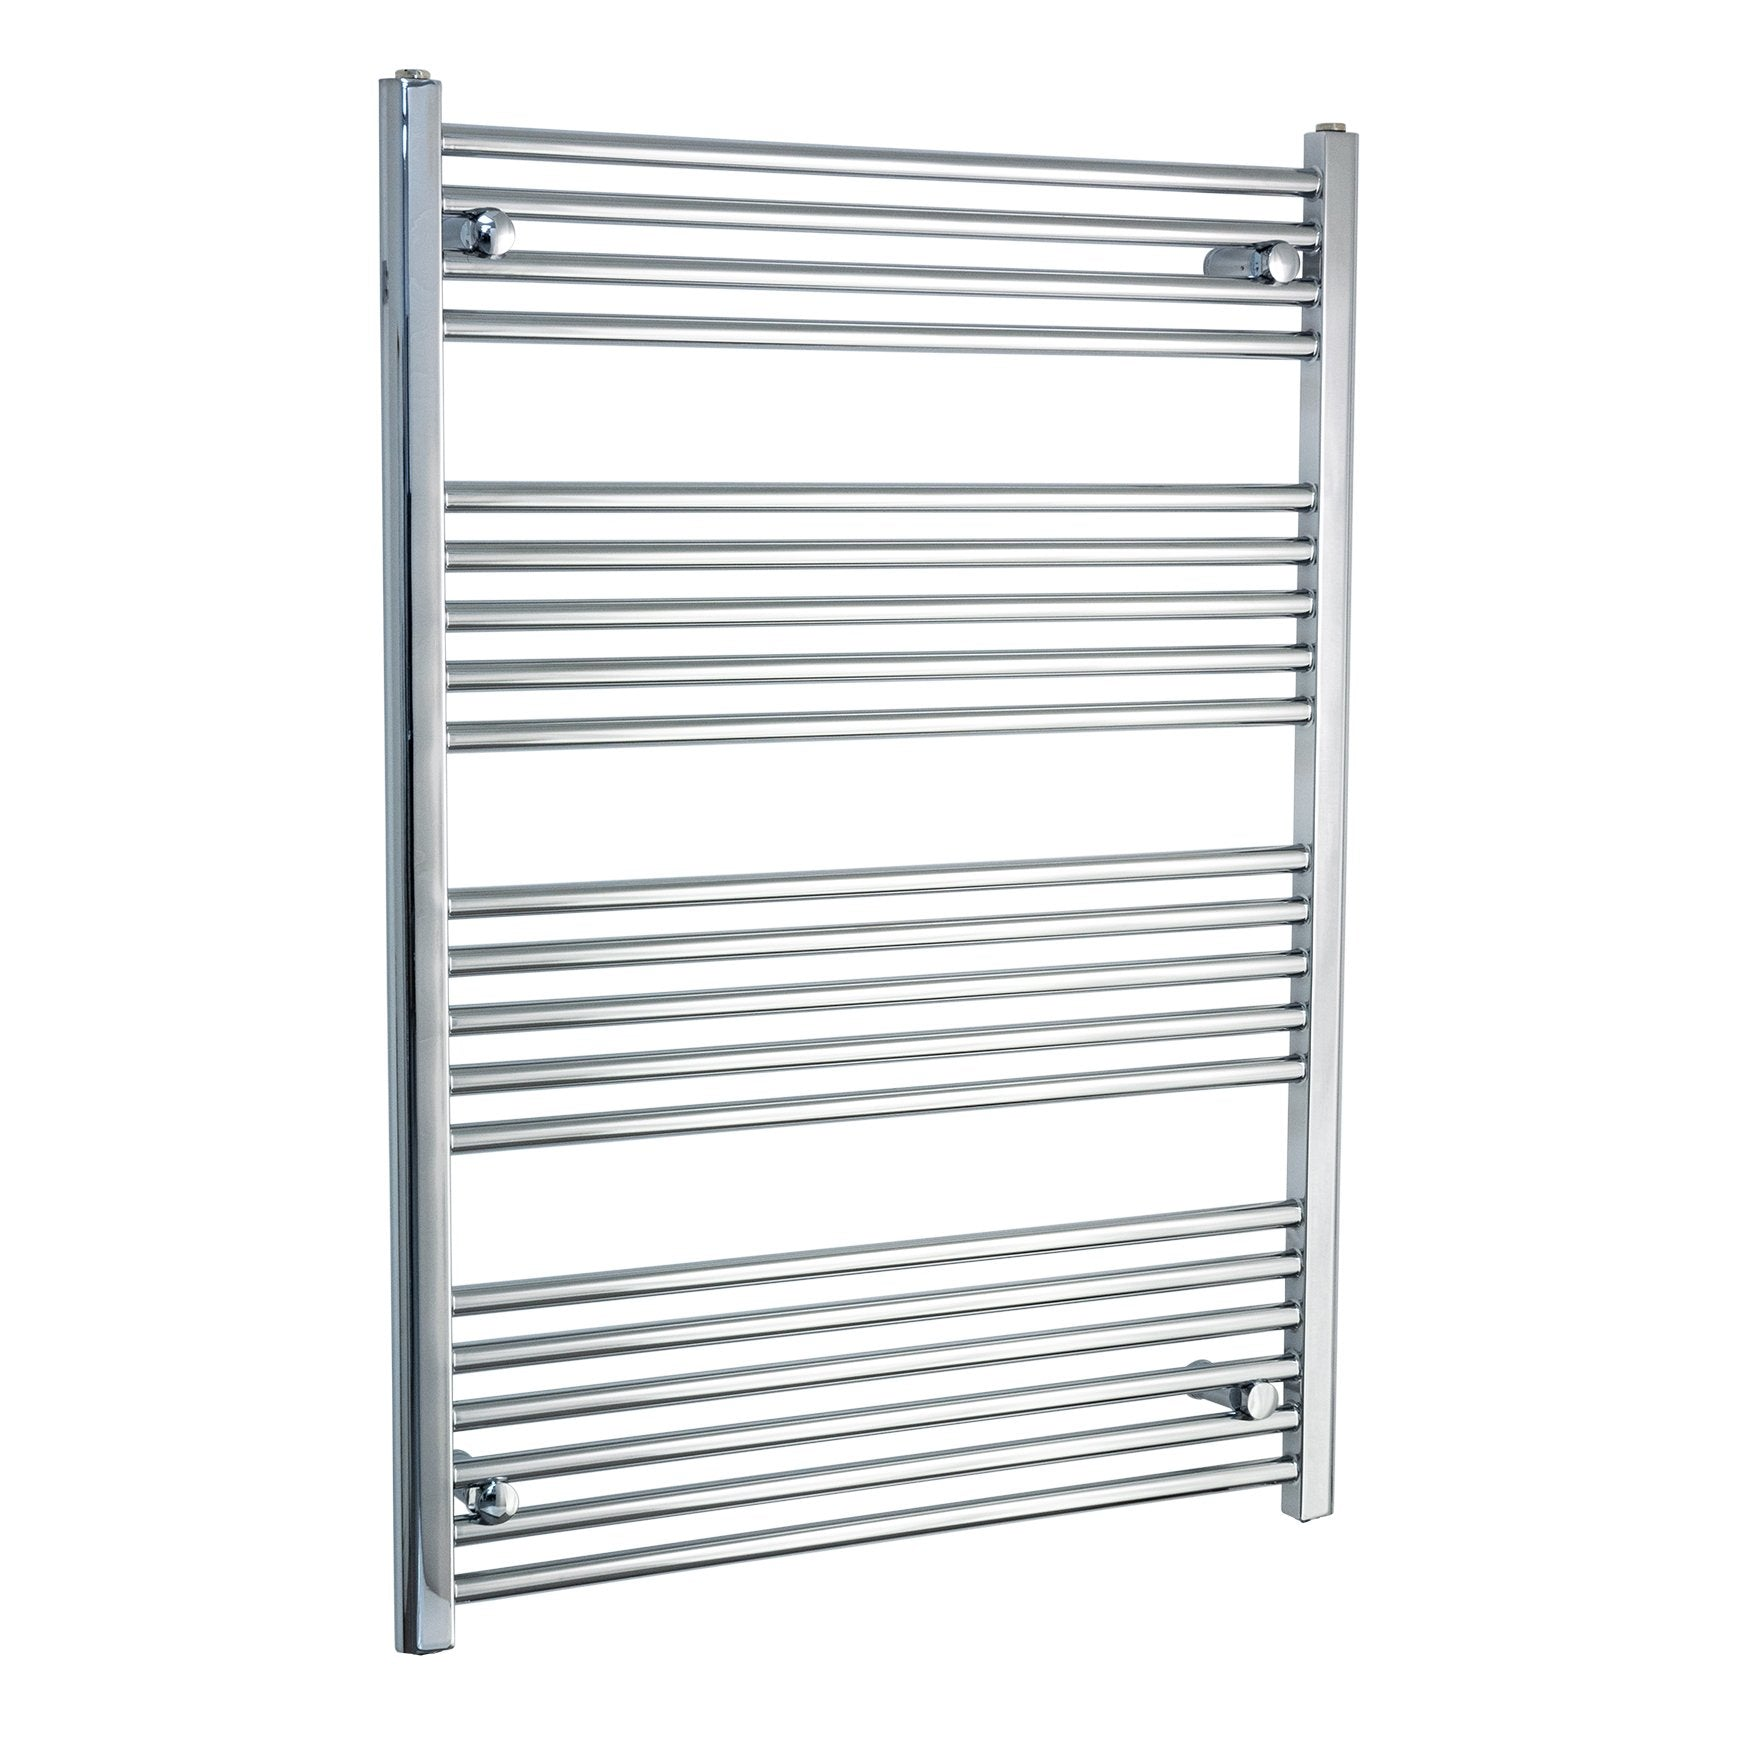 750mm Wide 1100mm High Curved Chrome Heated Towel Rail Radiator HTR,Towel Rail Only